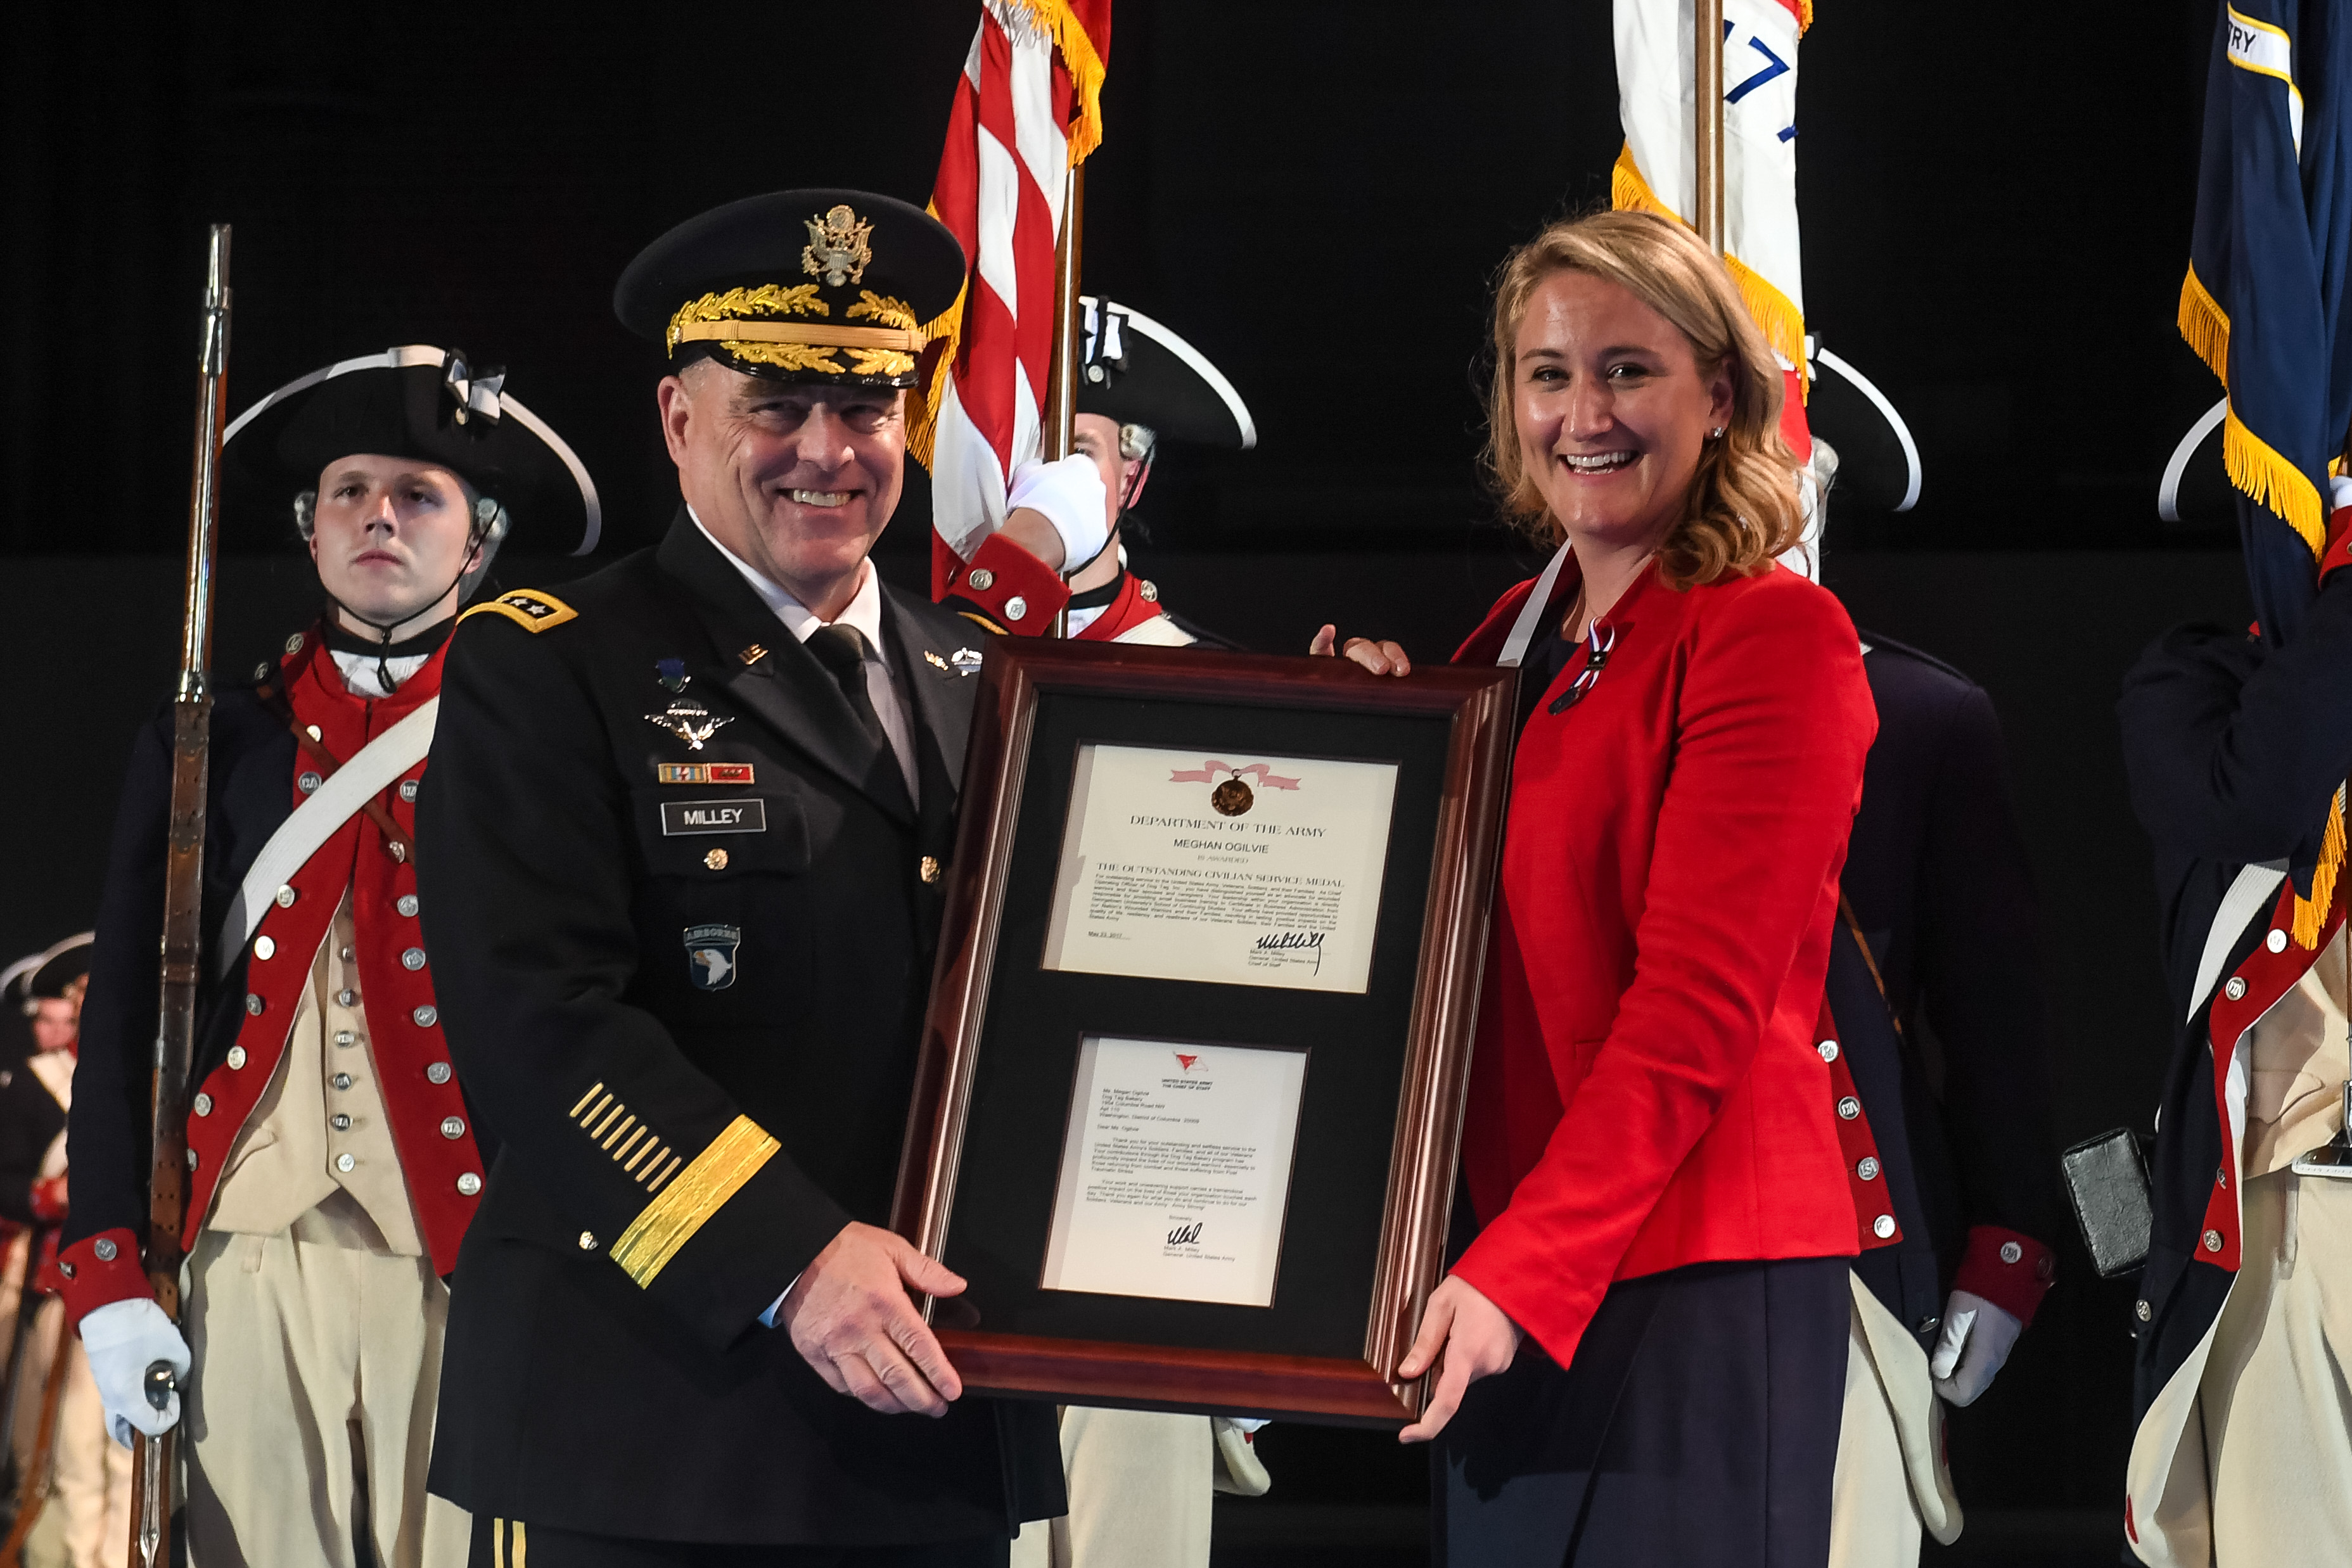 Q&A with Presidential Leadership Scholar Meghan Ogilvie, Recipient of the Outstanding Service Award from the U.S. Army